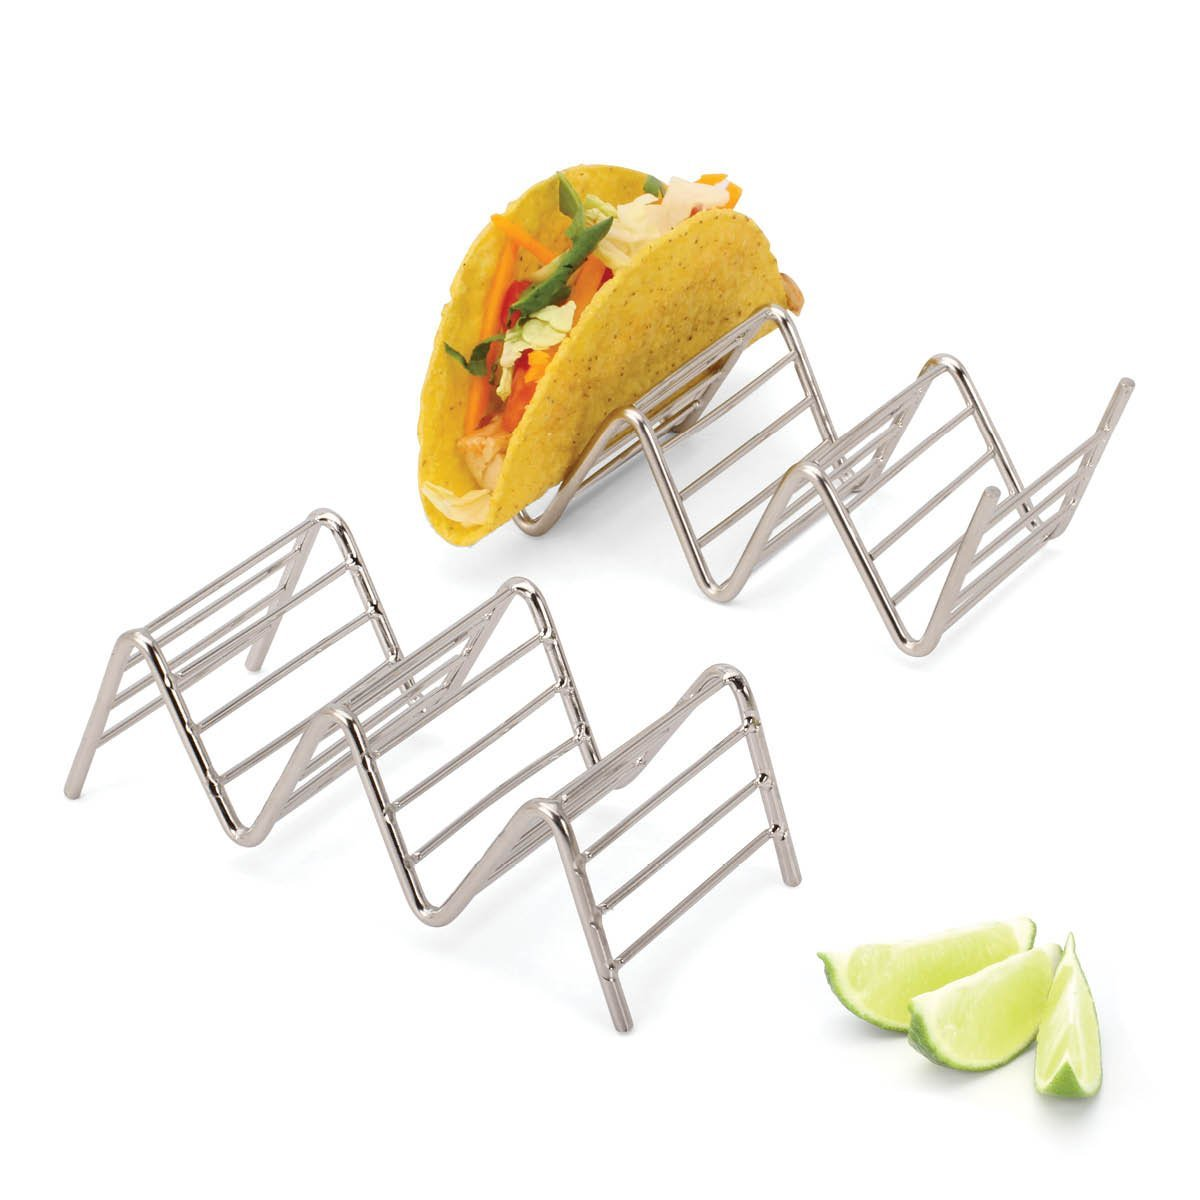 Taco Holders Taco Stand Rack Stainless Steel Taco Shell Pack of 4 Hold Up to 12 Tacos Stackable Trays for Soft /& Hard Tacos with Oven /& Dishwasher Safe